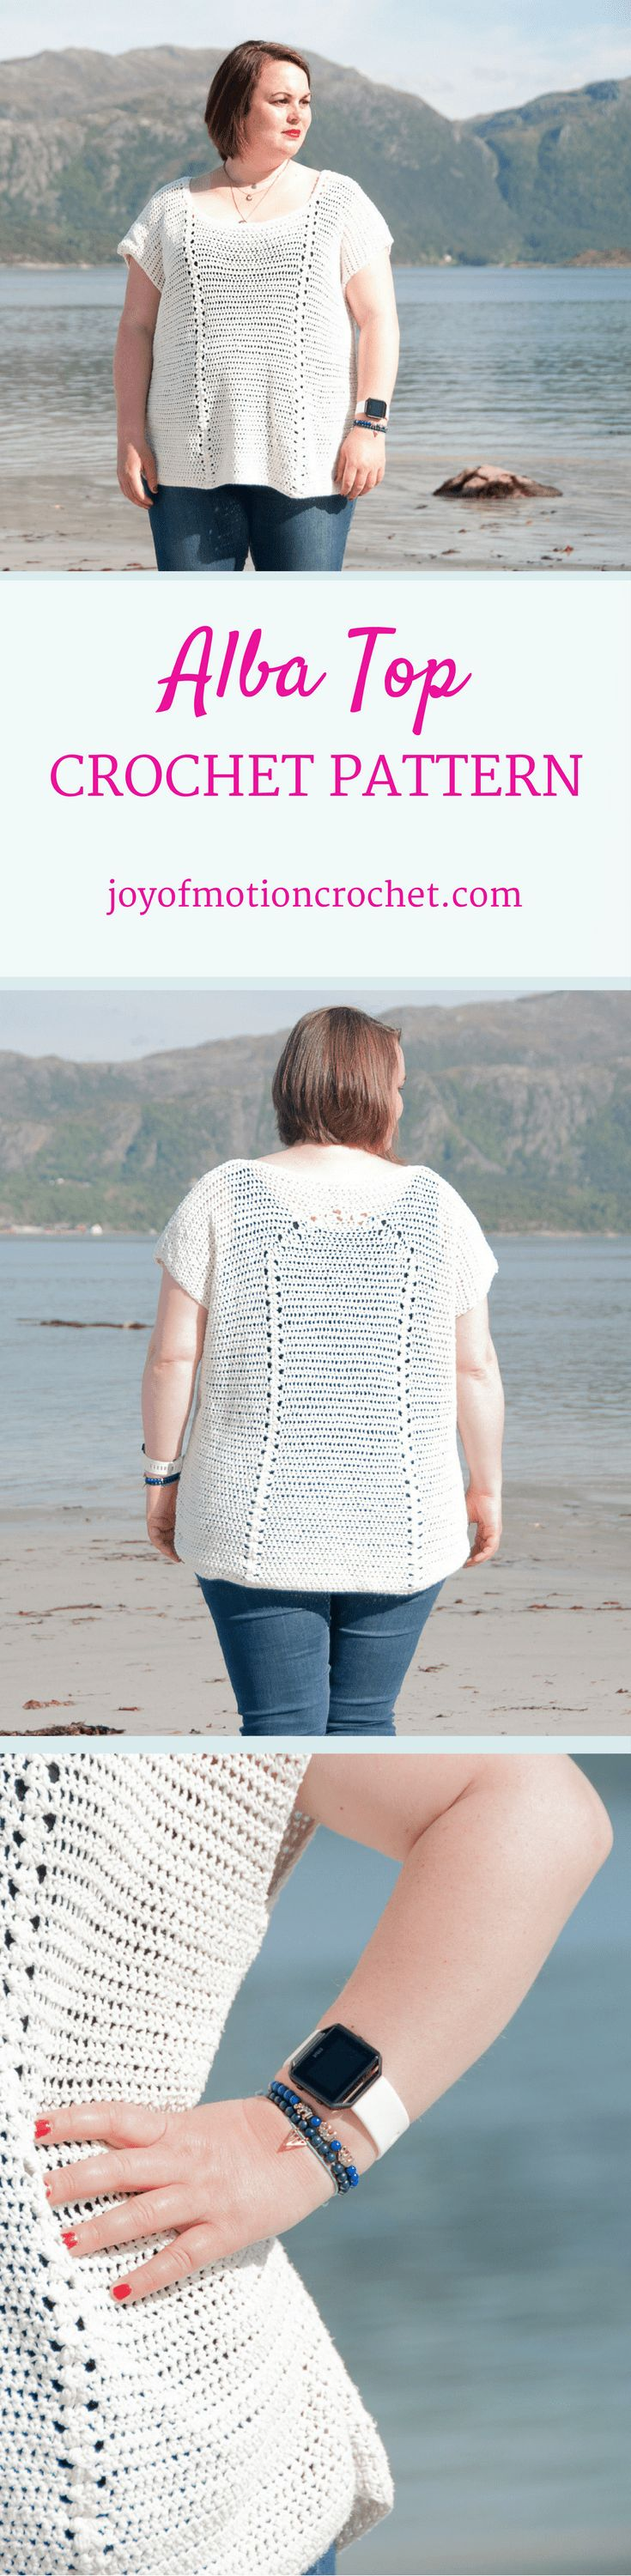 The Alba top a crochet pattern. Woman's top crochet pattern with skill level easy.. Make this fashionable crochet top with your own crochet hook & yarn. Top crochet pattern easy for her. Top crochet pattern easy for her. | crochet top | woman's crochet top | crochet pattern for her | fashionable crochet top | interesting crochet top | Click to purchase or repin to save it forever. via @http://pinterest.com/joyofmotion/